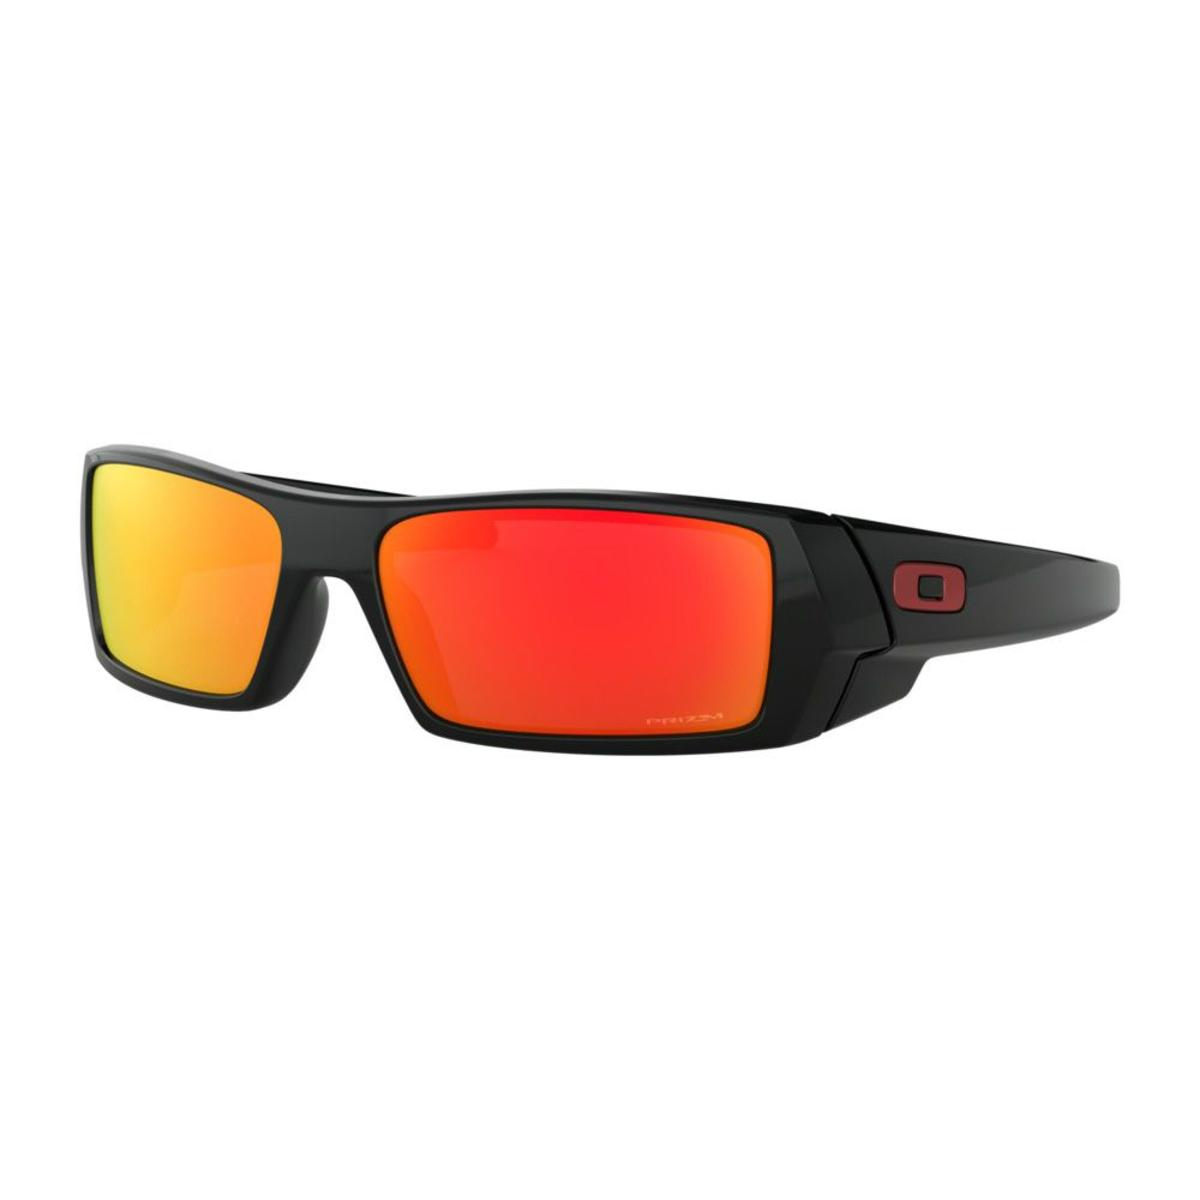 a6988c1a79d3 Oakley GasCan Polished Black Sunglasses w/Prizm Ruby - The Warming Store